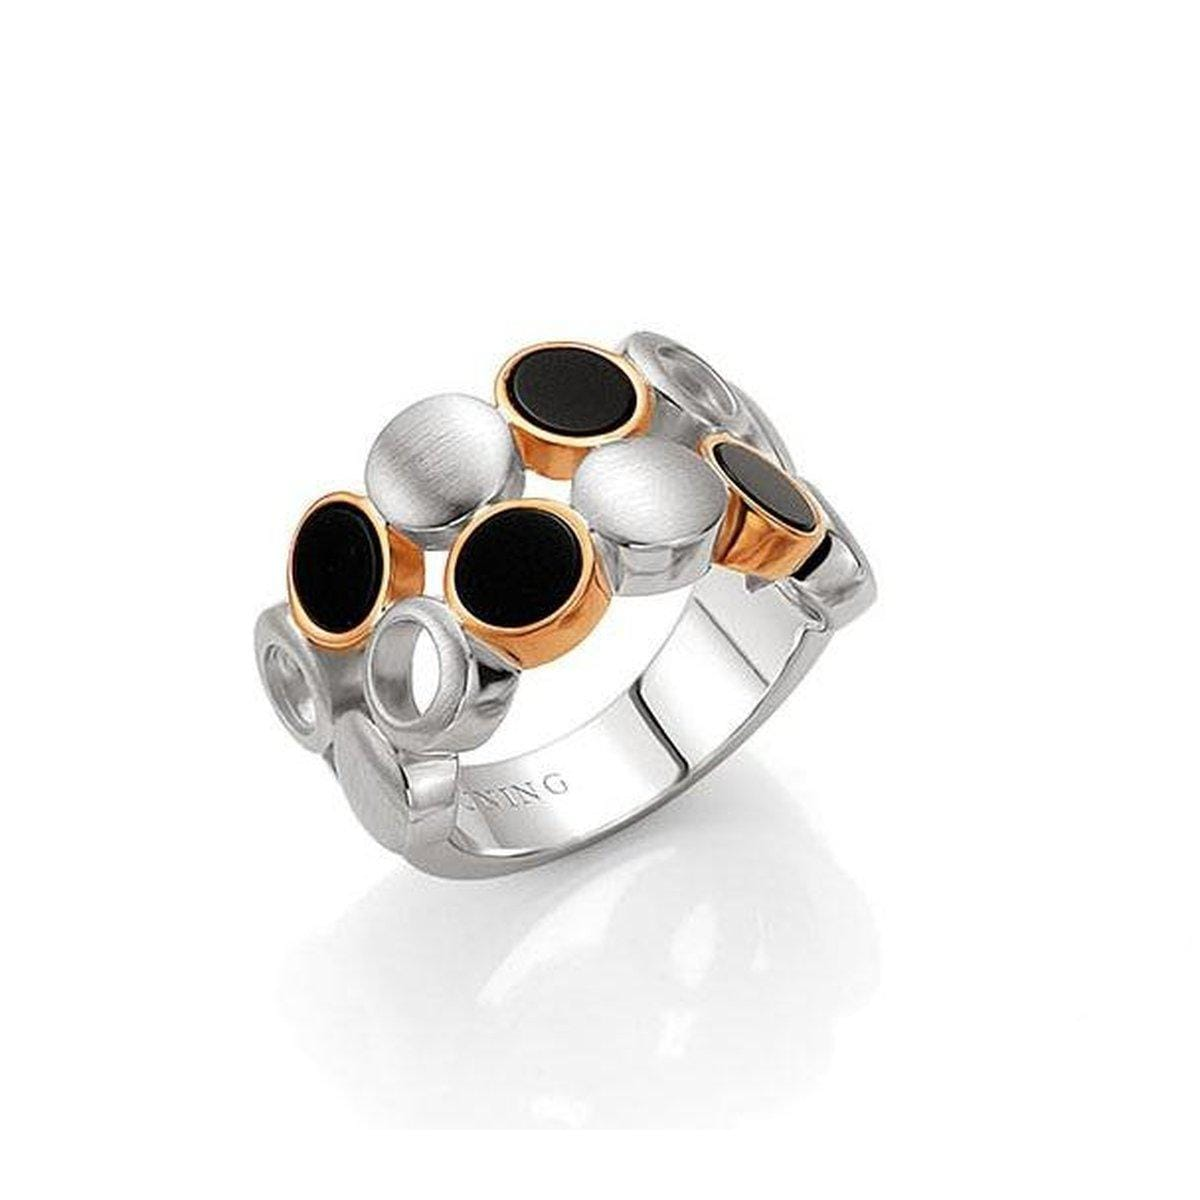 Rose Gold & Rhodium Plated Sterling Silver Onyx Ring - 42/03224-Breuning-Renee Taylor Gallery